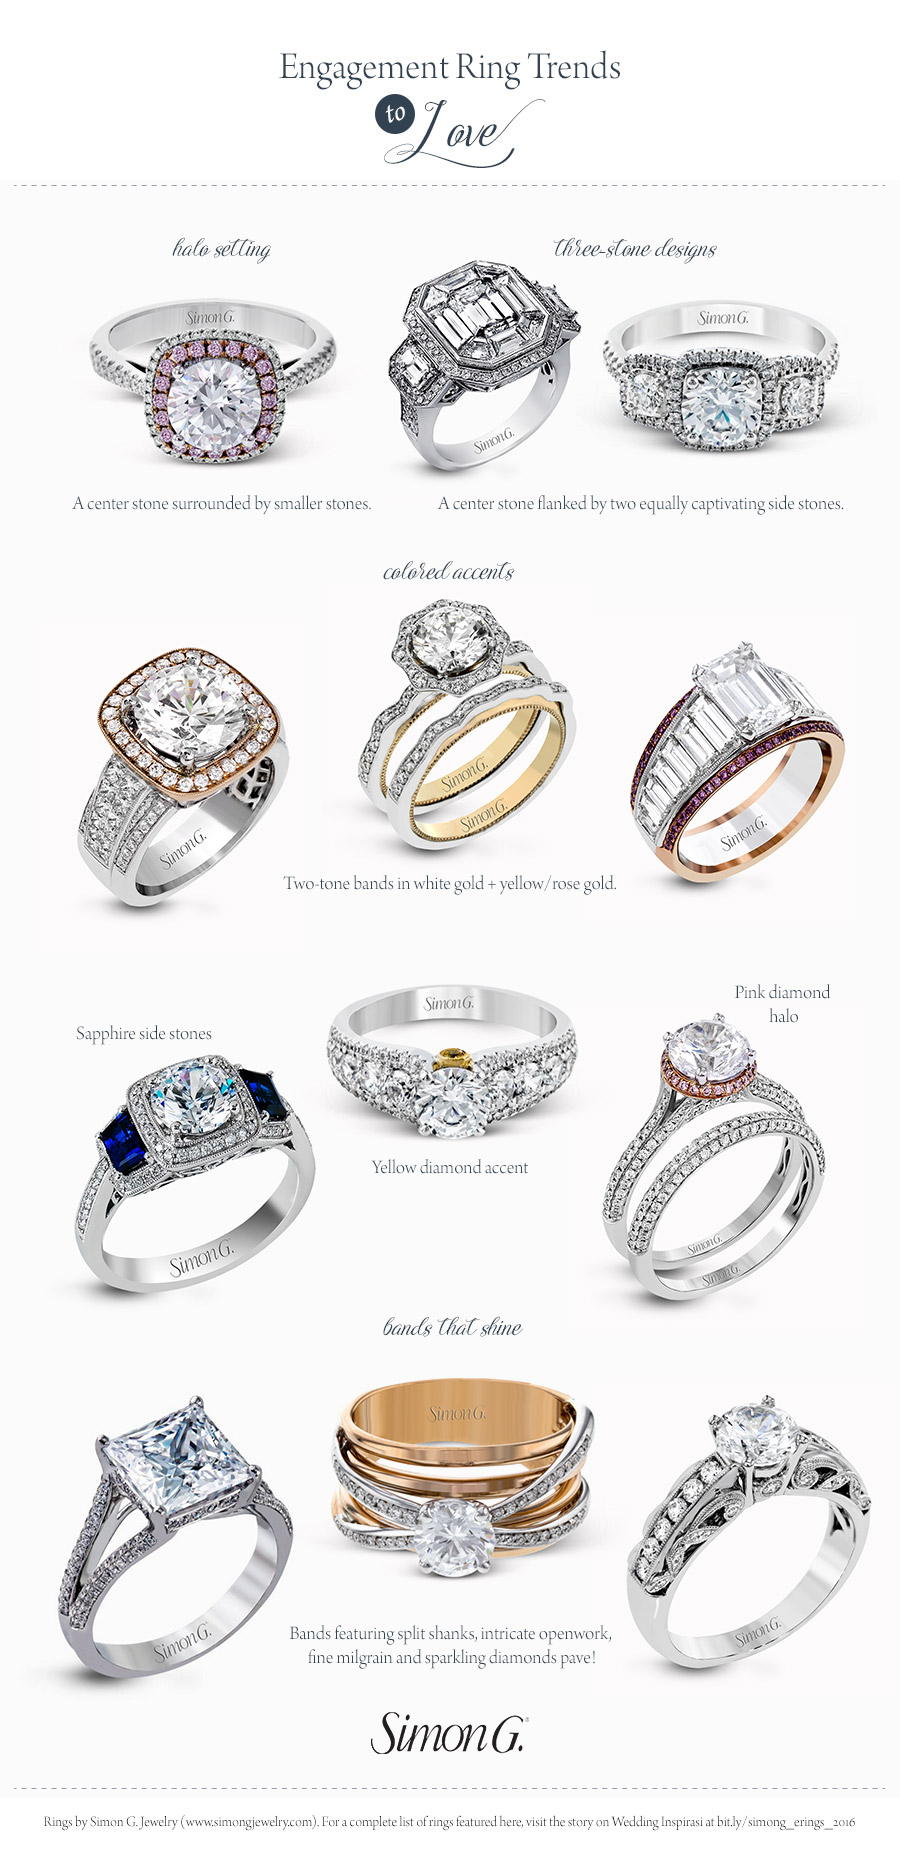 rose see will ring styles pear gallery diamond that gold shaped for be and bands engagement trends east band priced in everywhere from youll west simply tacori